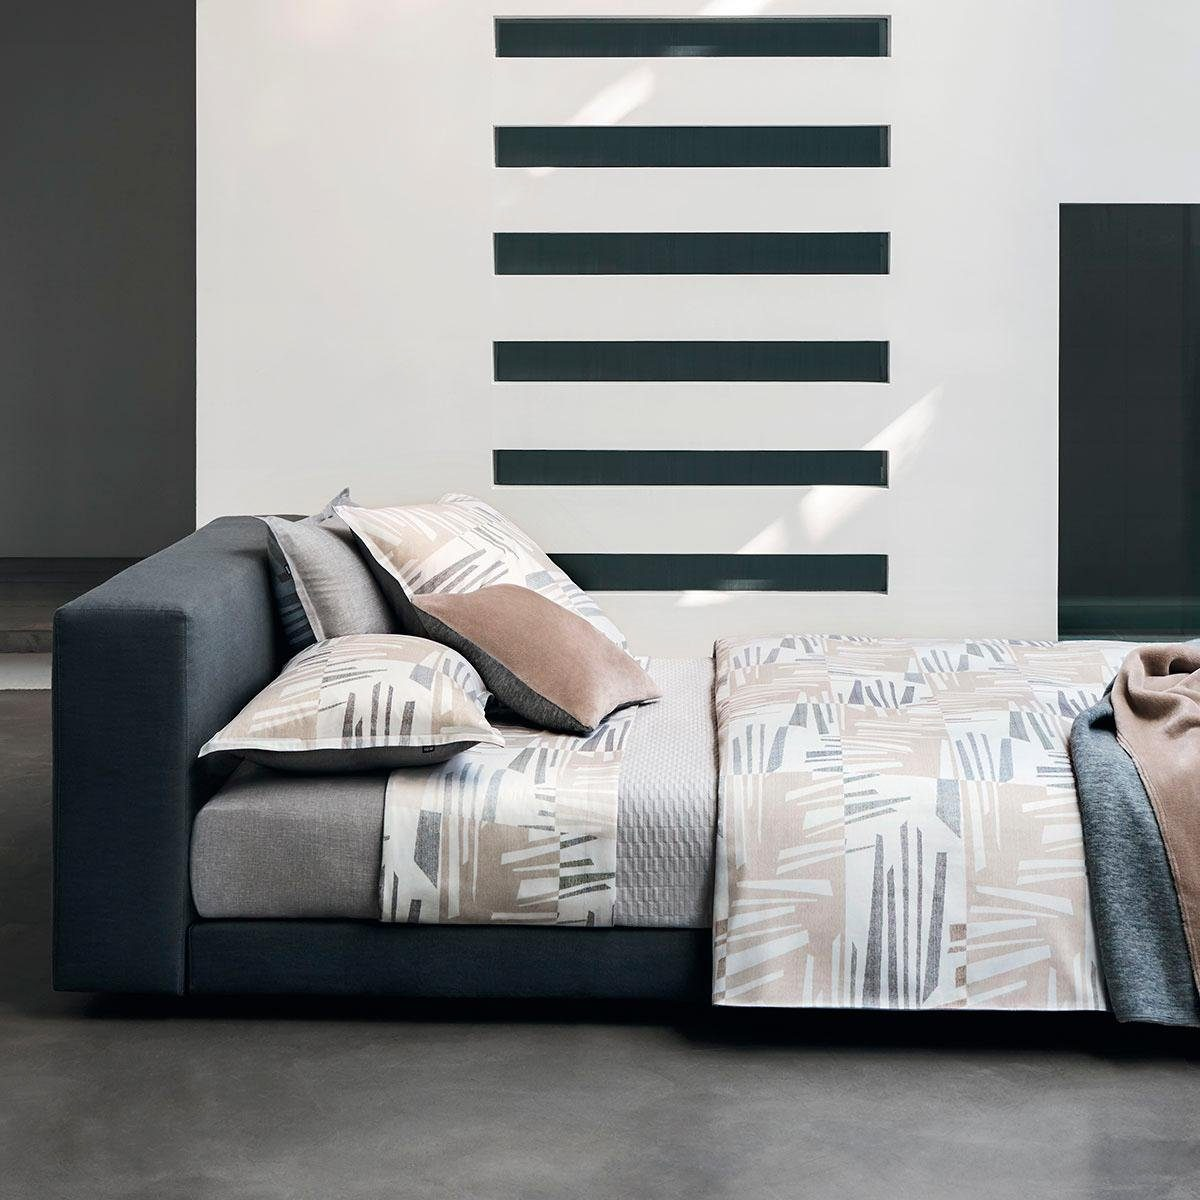 Wendebettwäsche Moment Hugo Boss Home Satin Otto